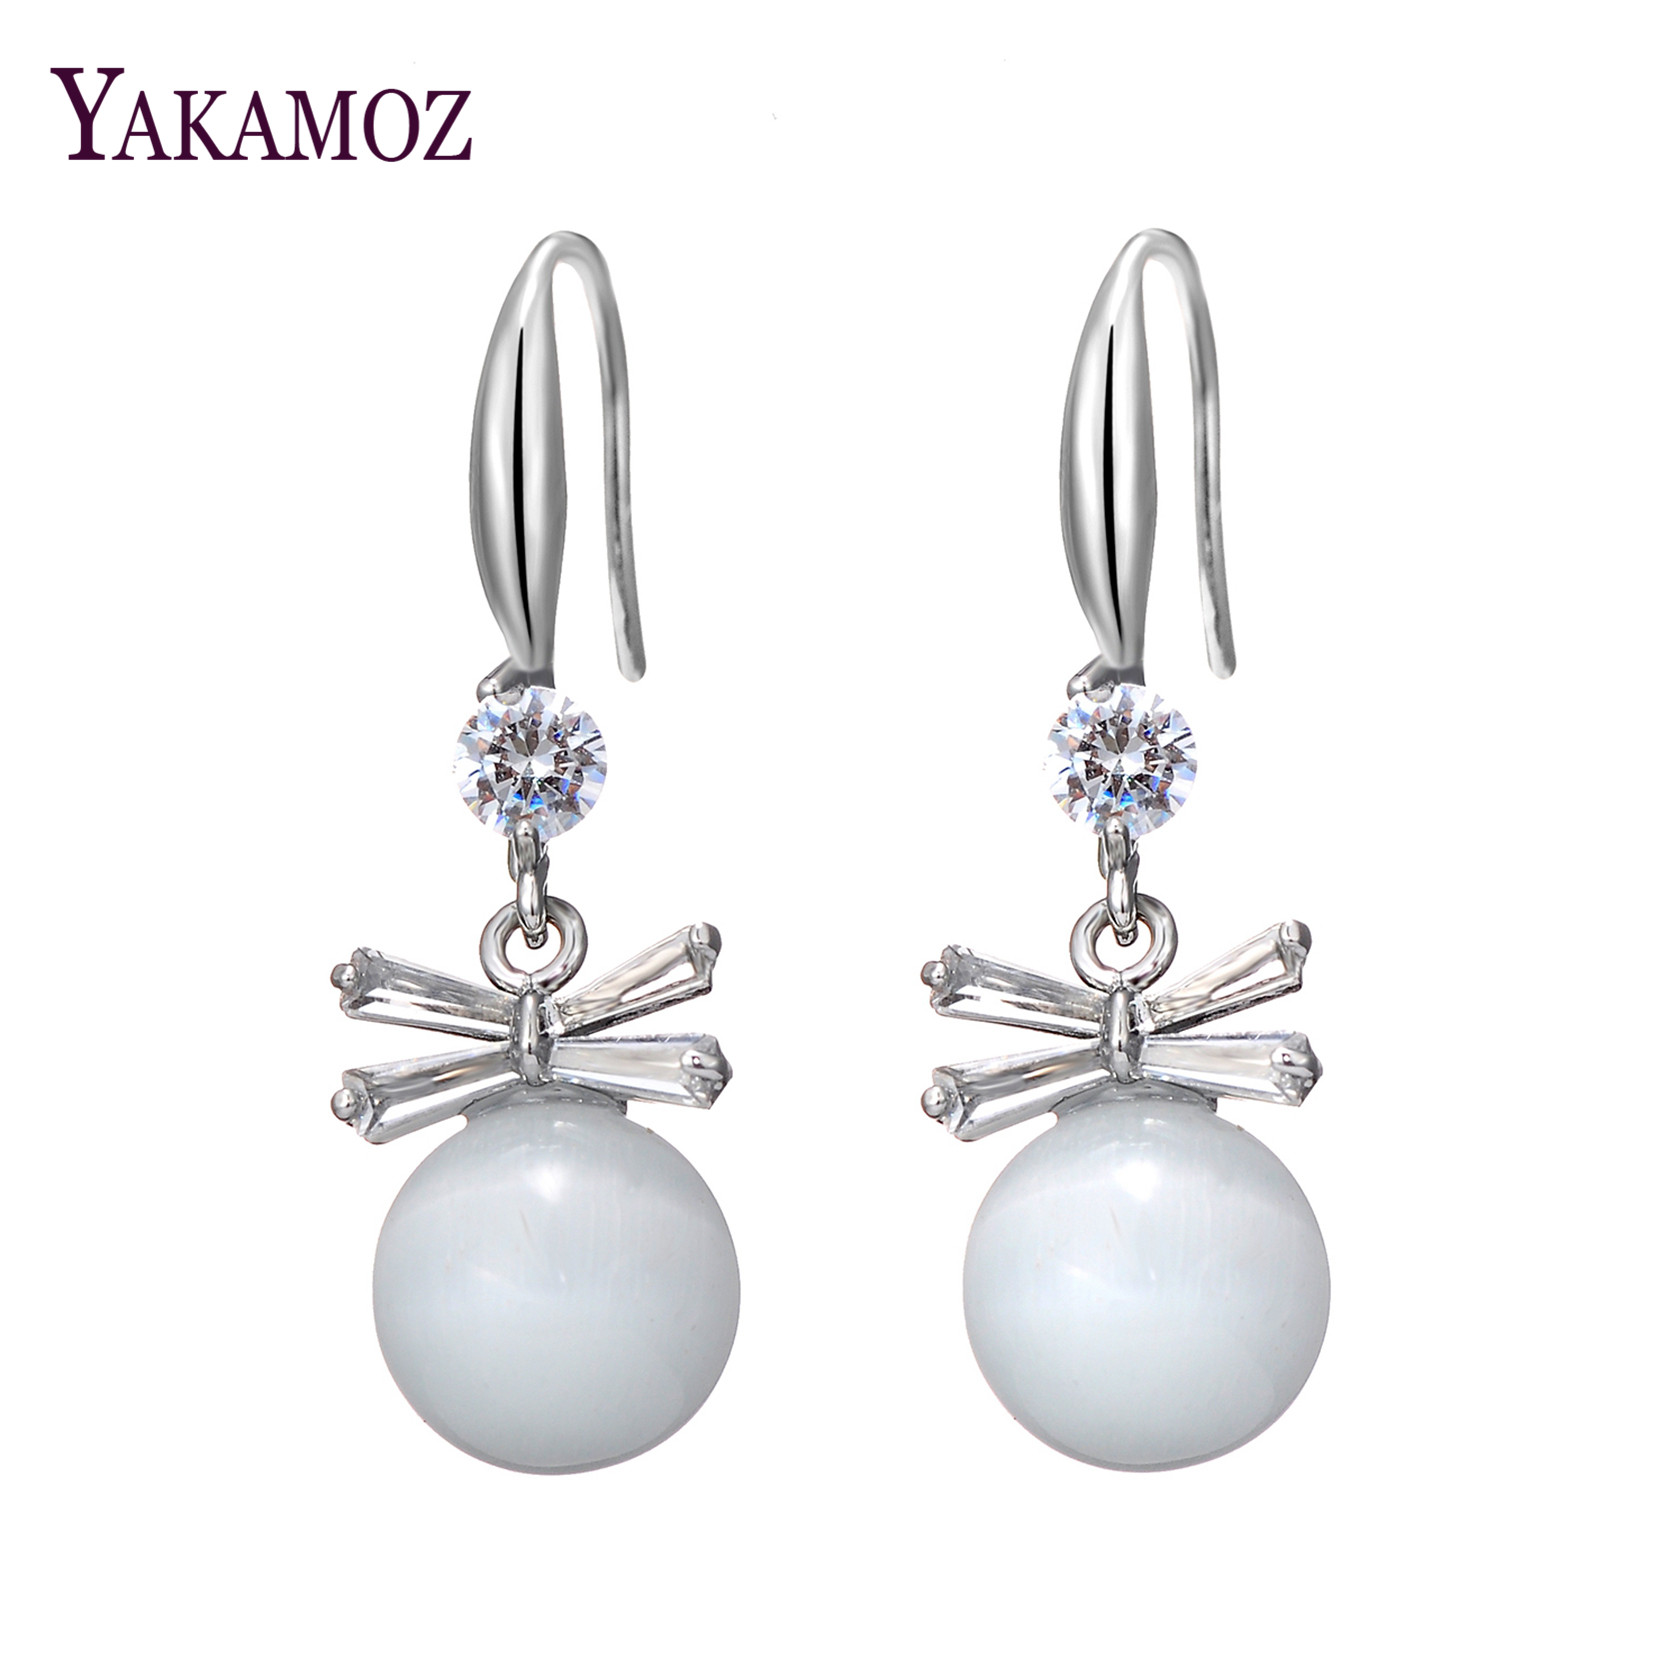 Uxury Crystal Zircon And Shell Pearl Bowknot Design Earrings ,original  Wedding Accessories(